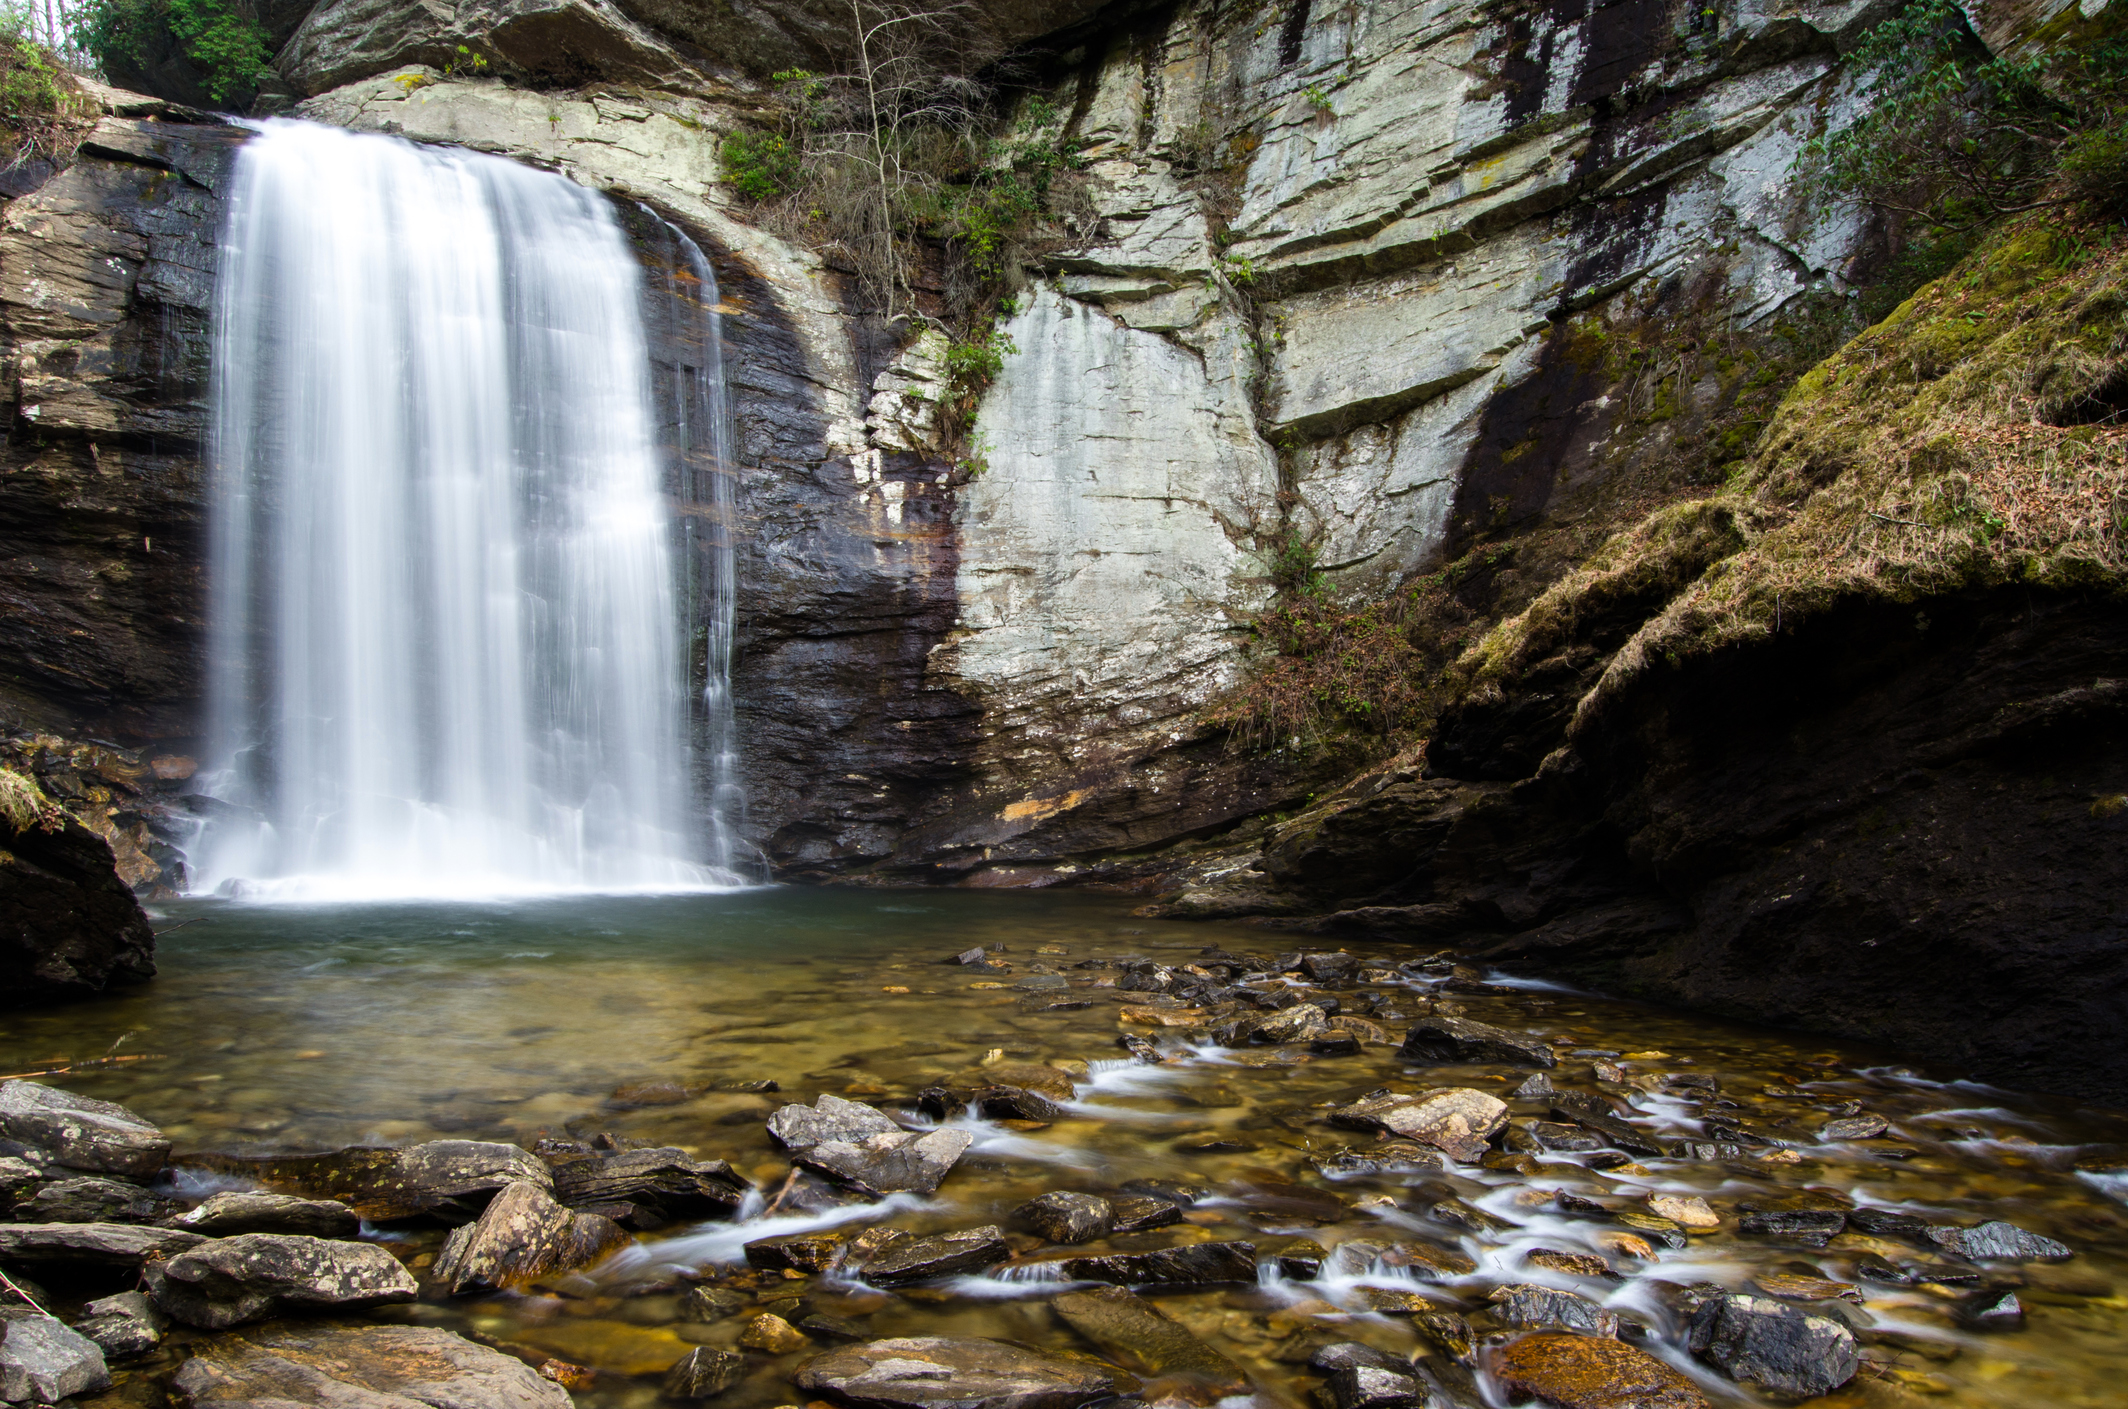 Looking Glass Falls at Pisgah National Forest in Brevard, NC. Read our blog on Looking Glass Falls to learn more about this special waterfall!